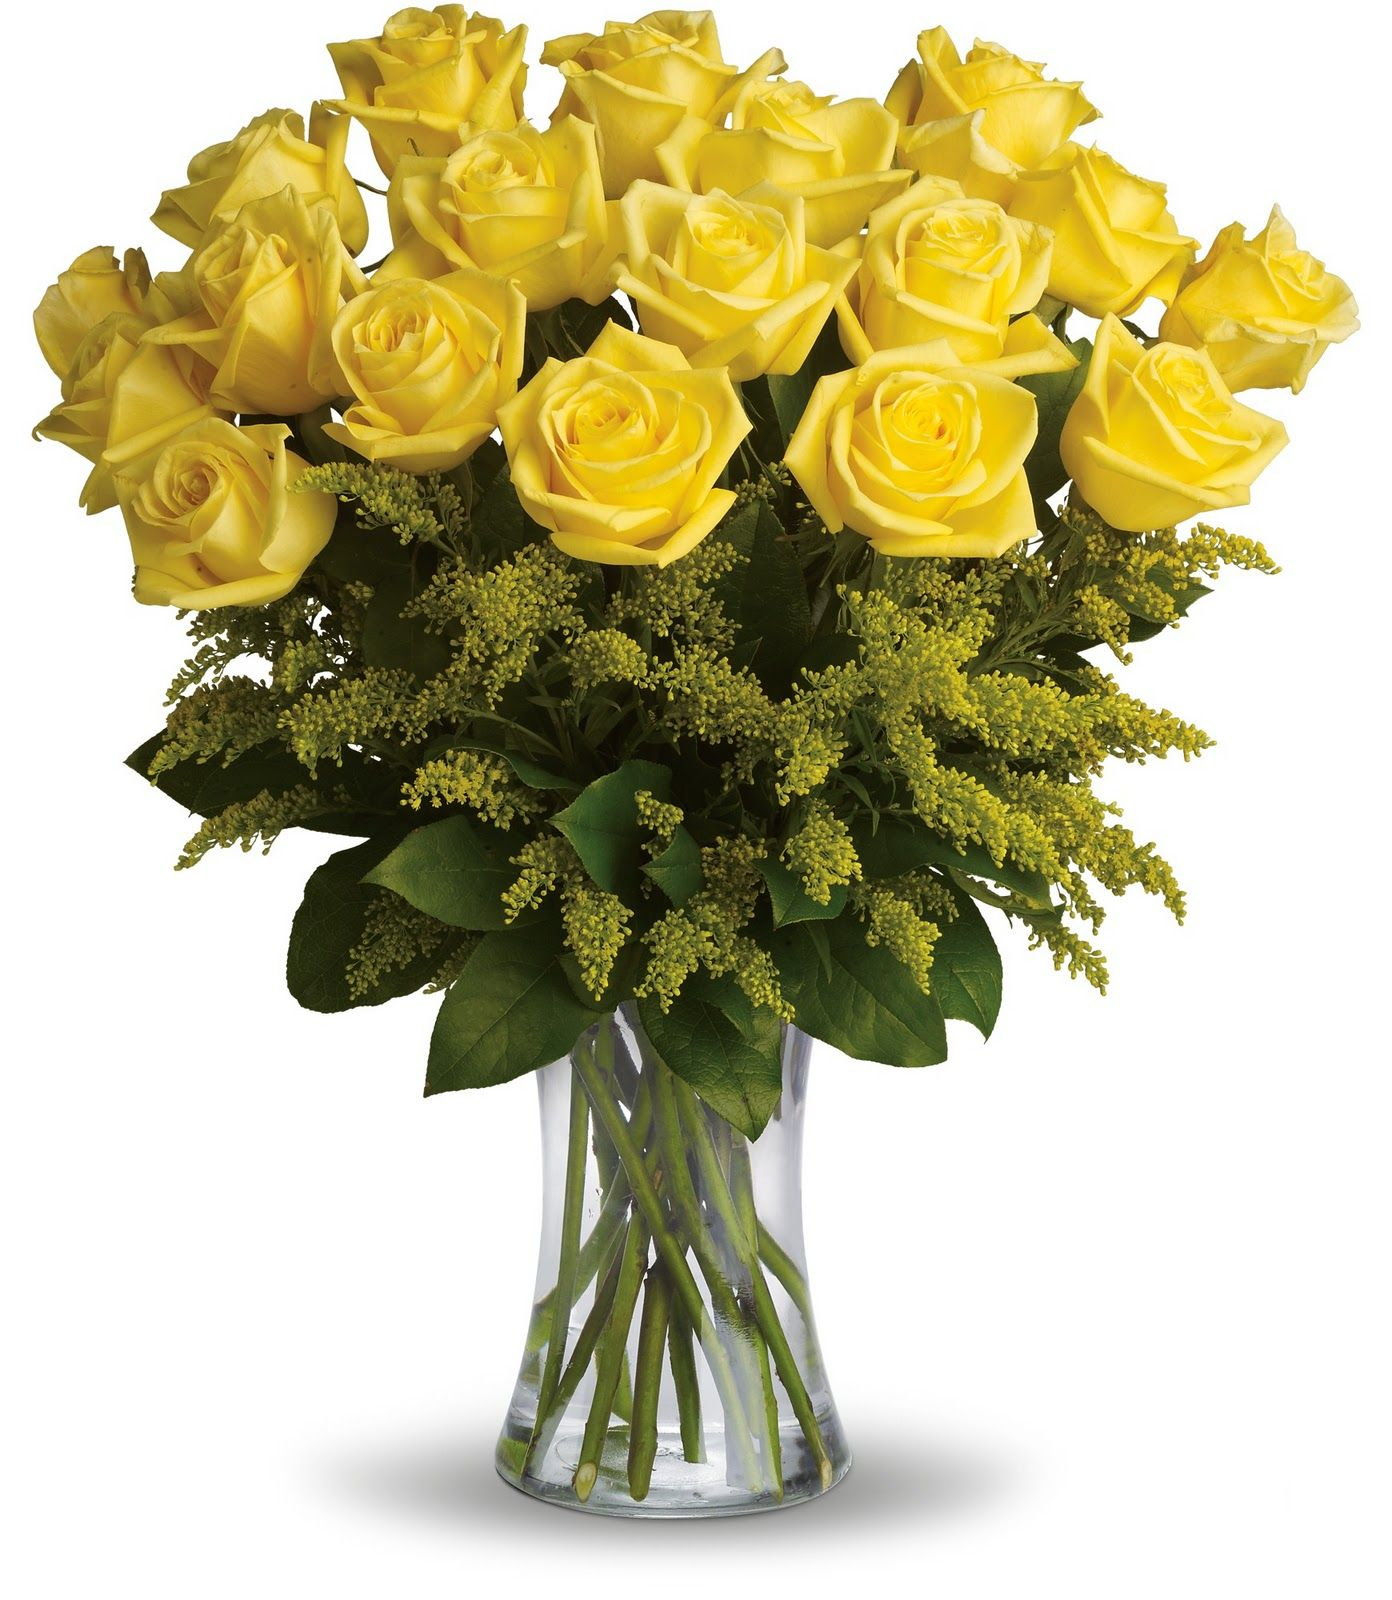 Friendship day yellow rose friendship day 2014 pinterest flowers - Flowers that mean friendship ...